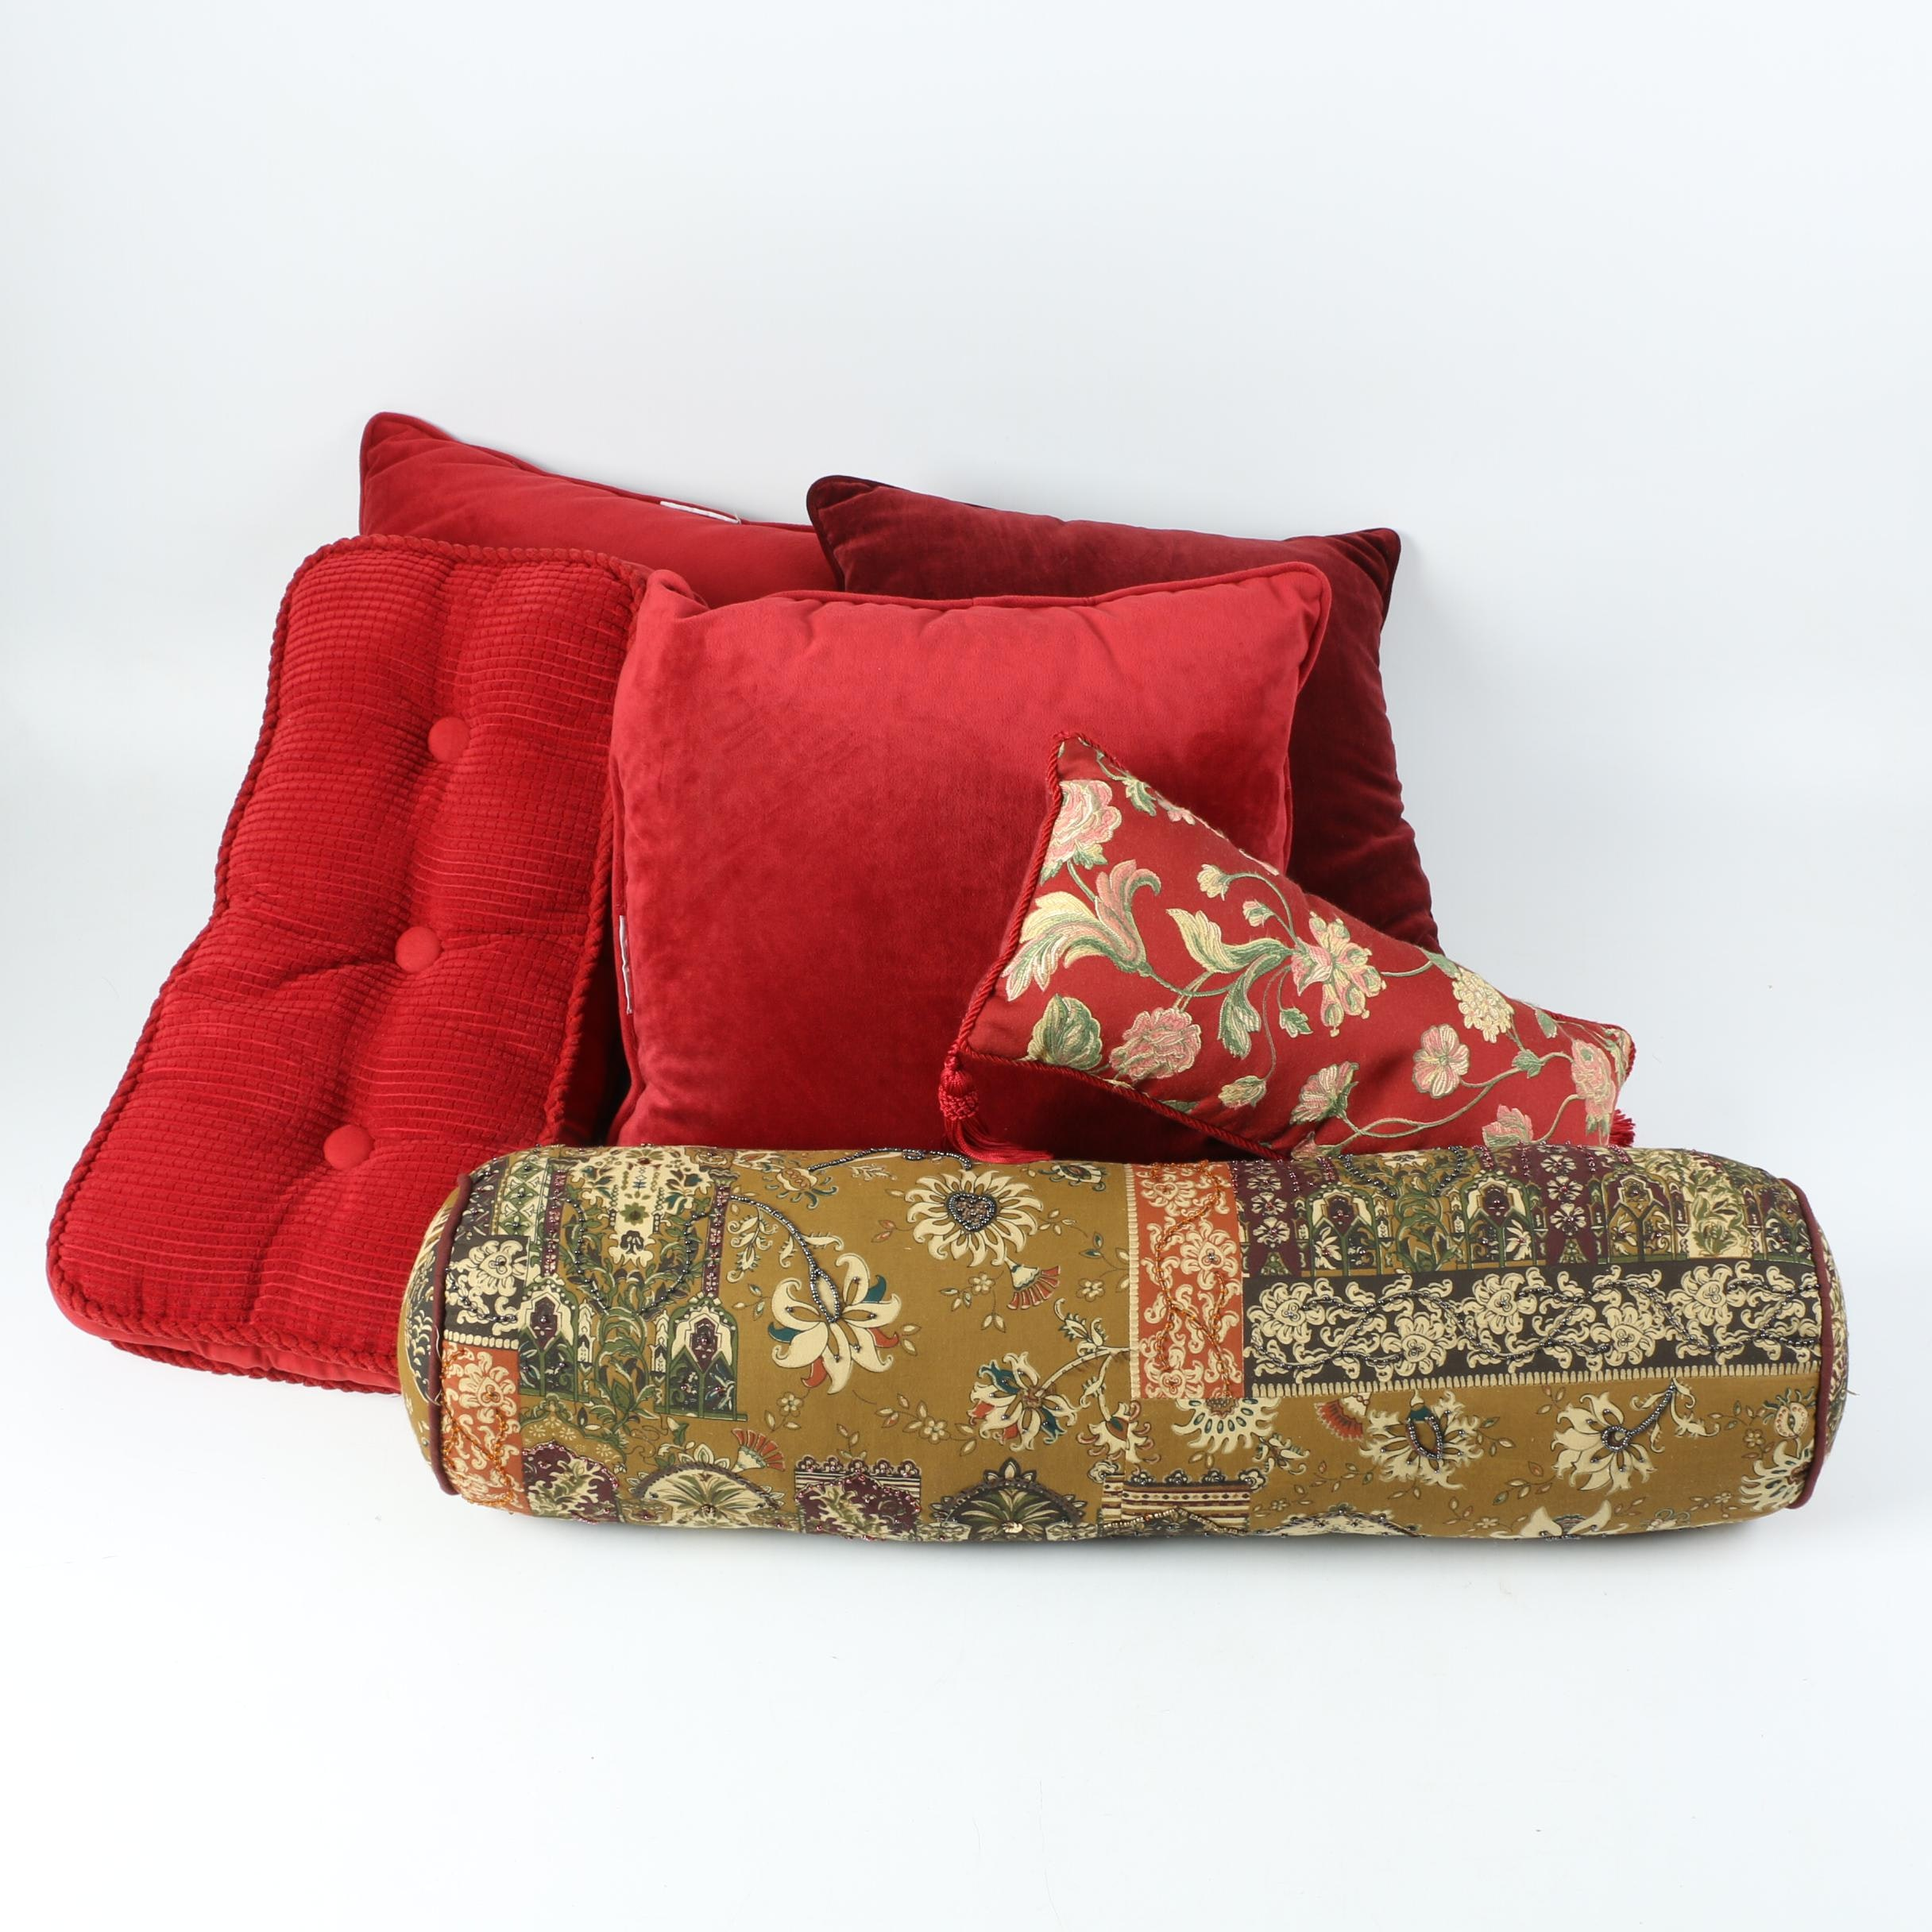 Bolster and Accent Pillows